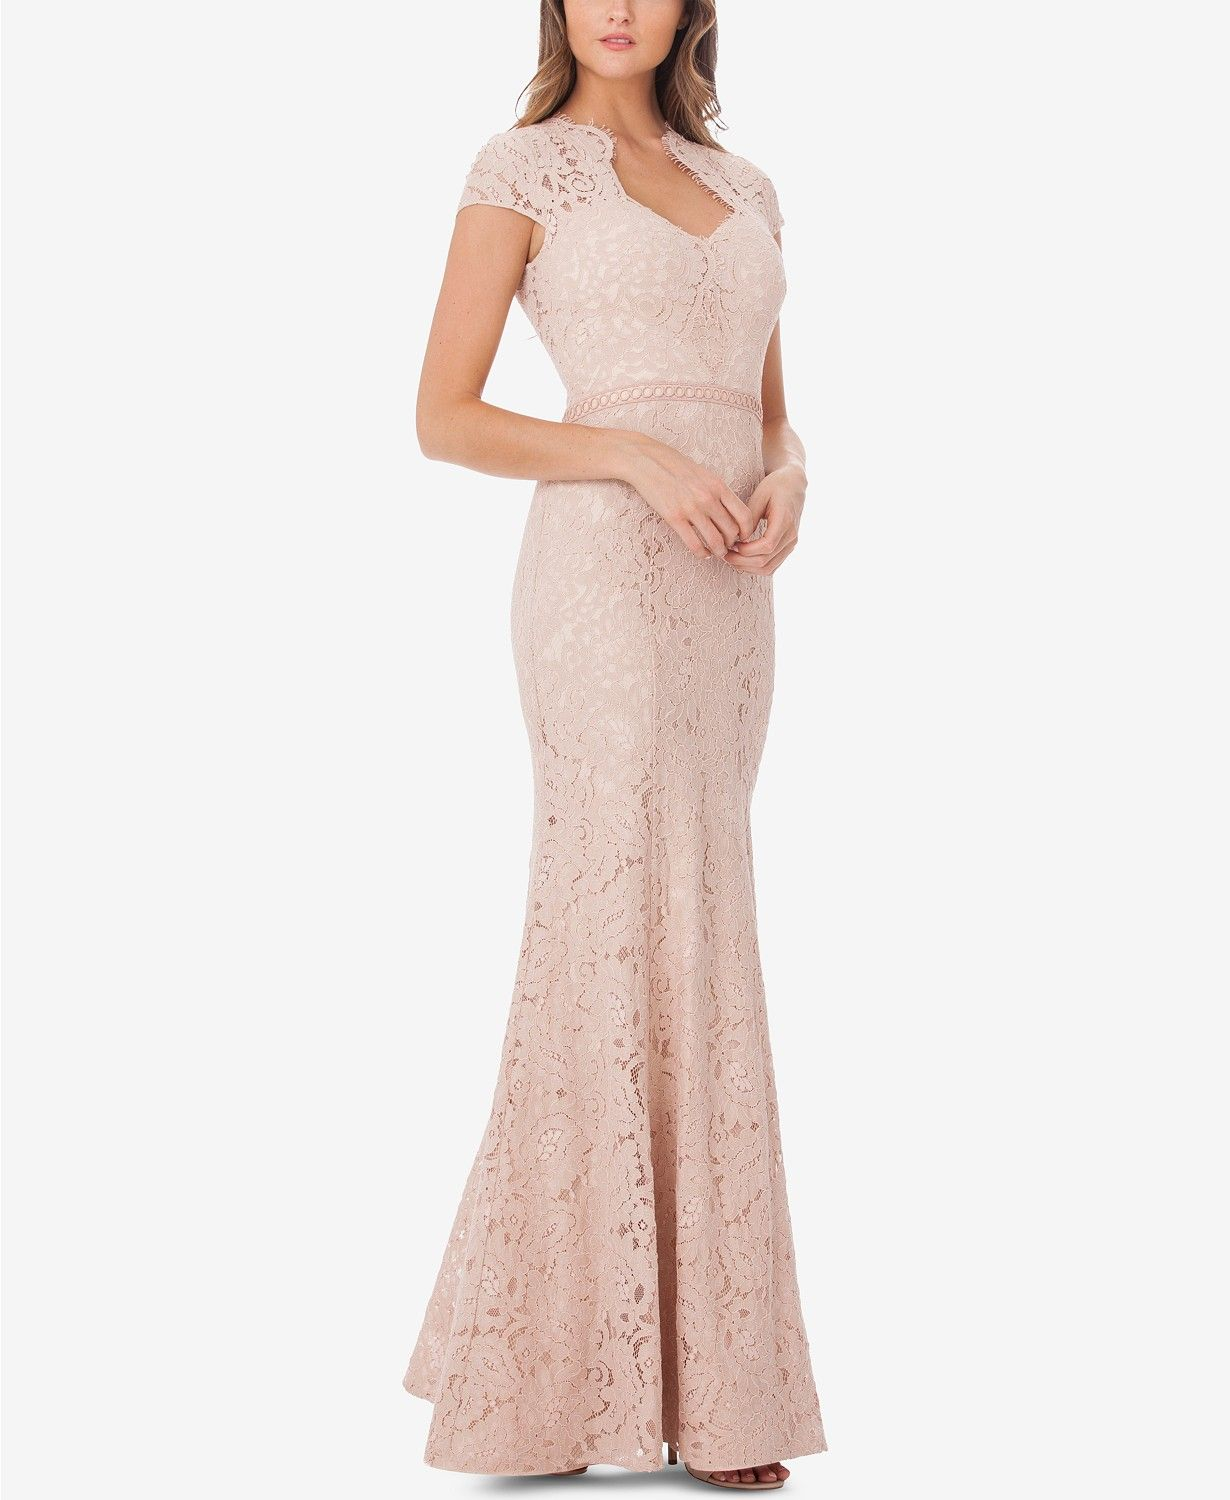 Sweetheart Lace Mermaid Gown Mother Of The Bride Pinterest